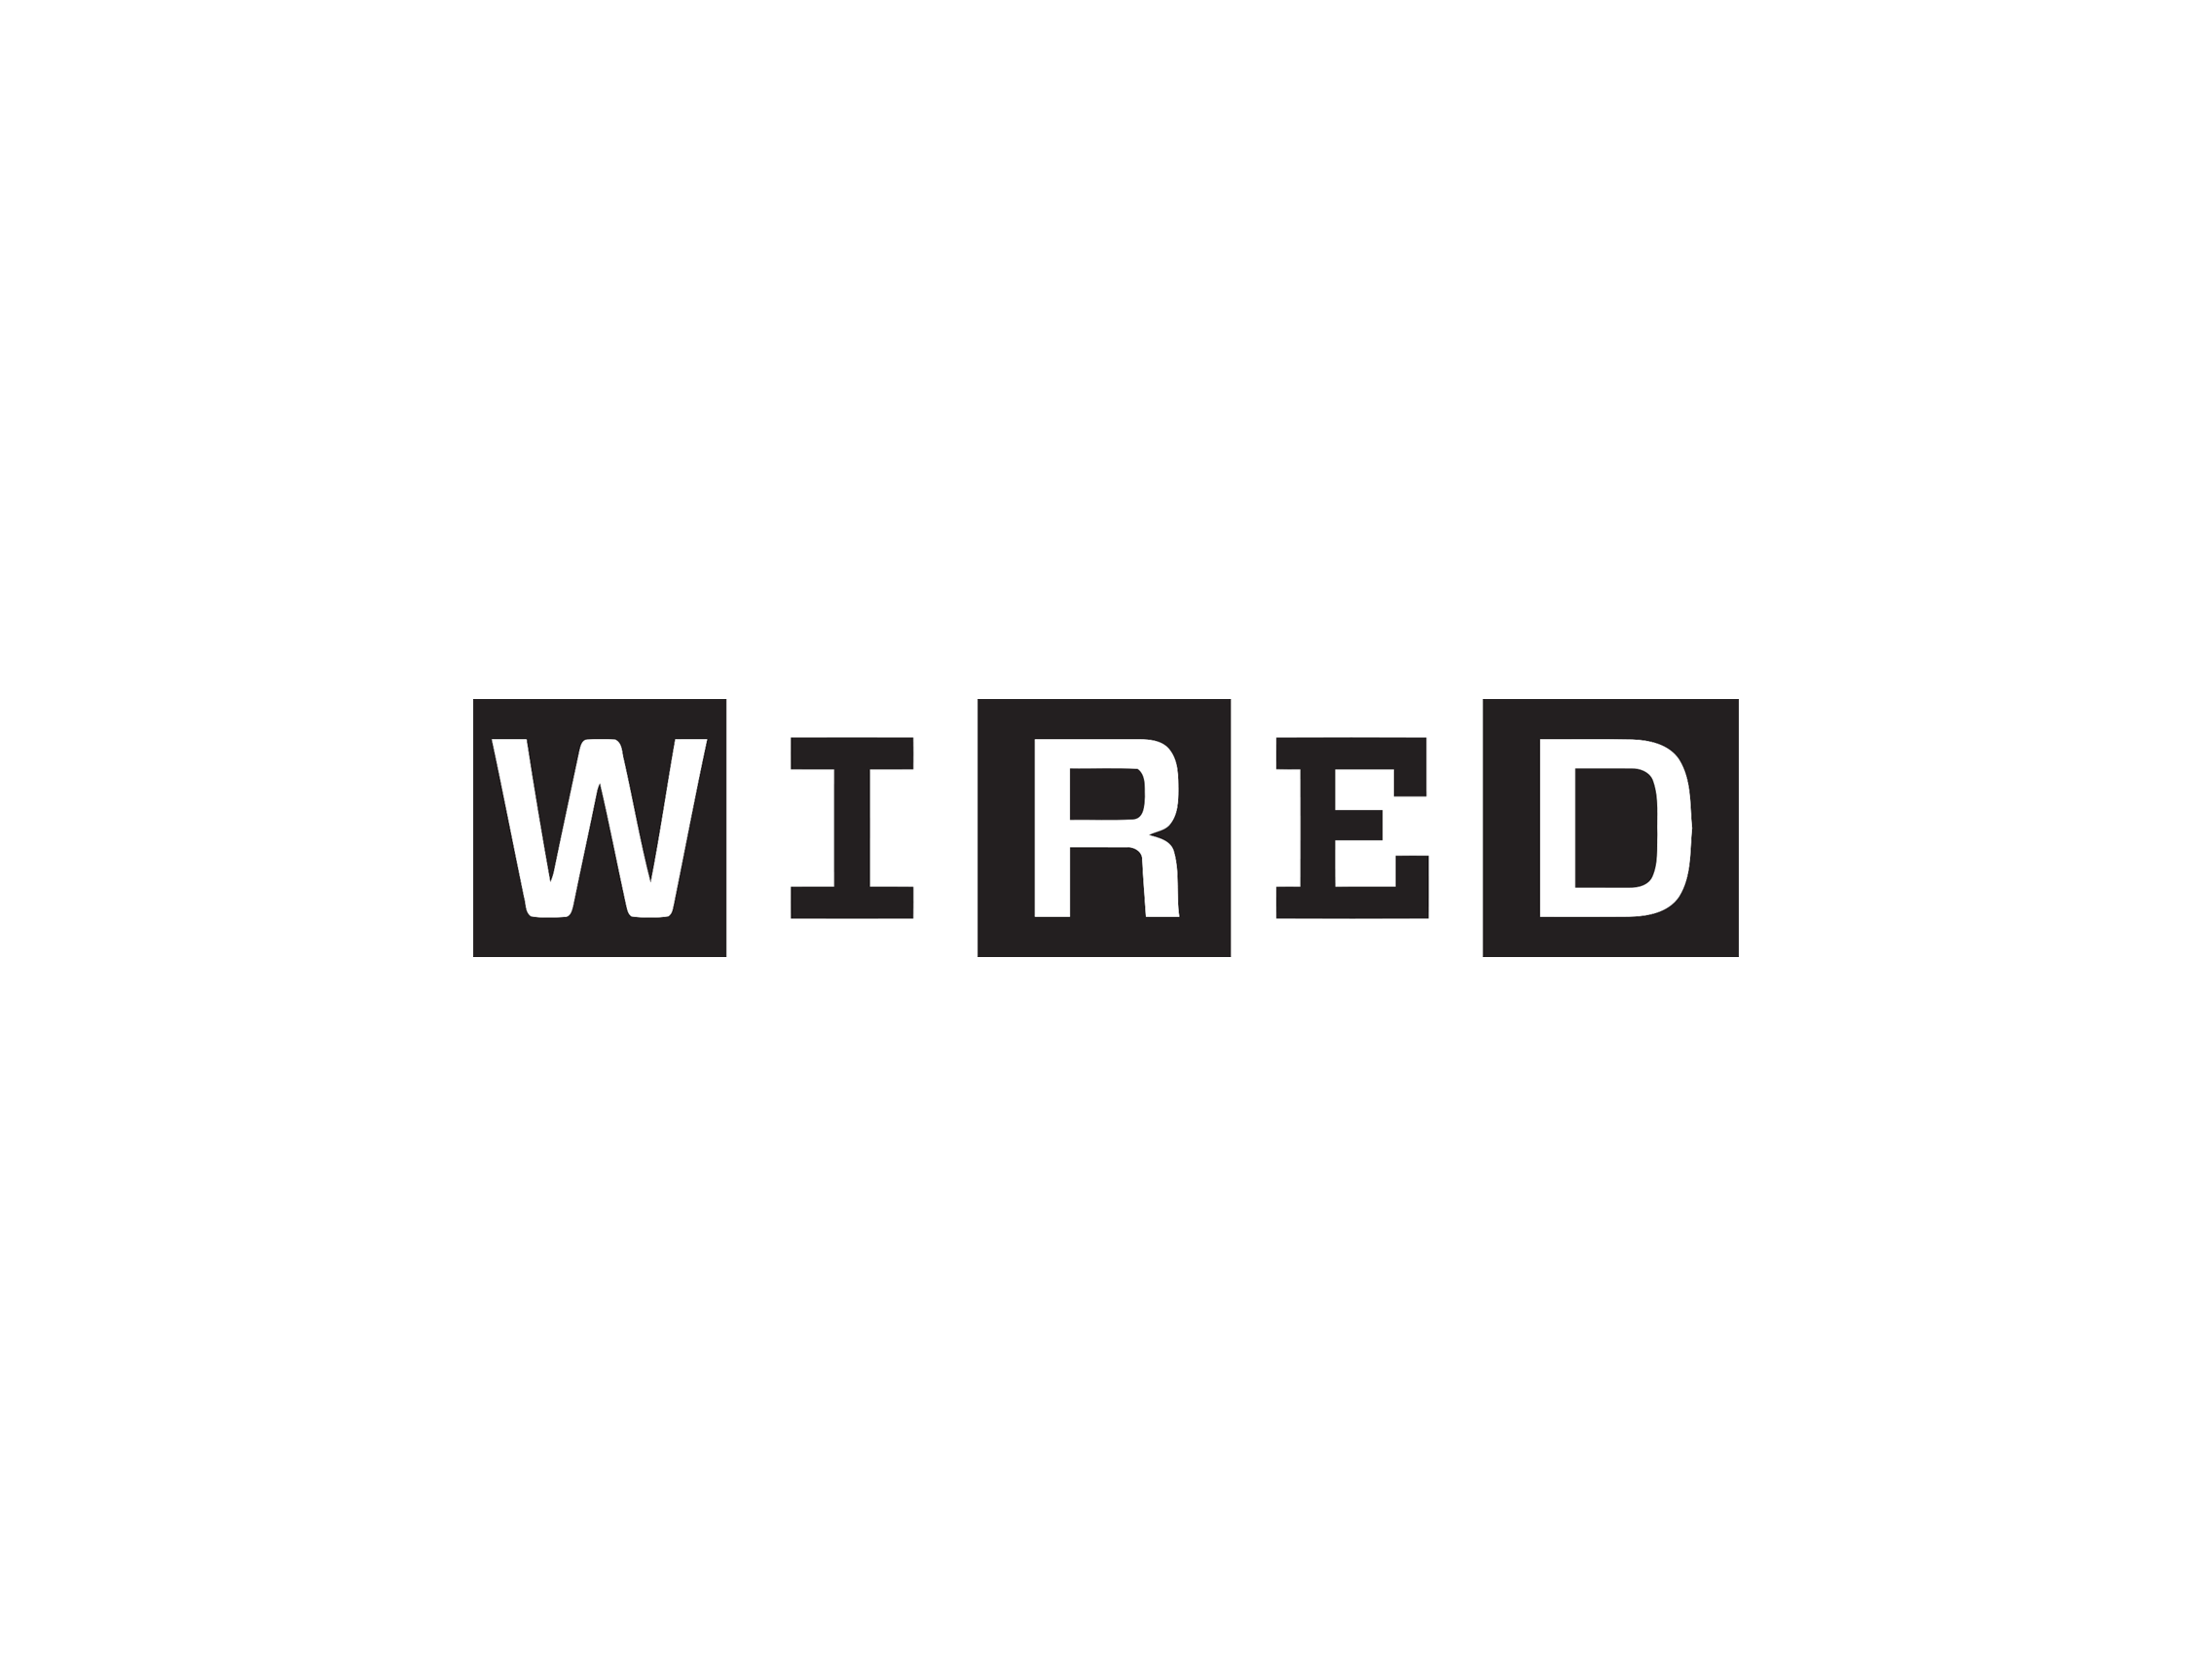 Wired_logo (1).png